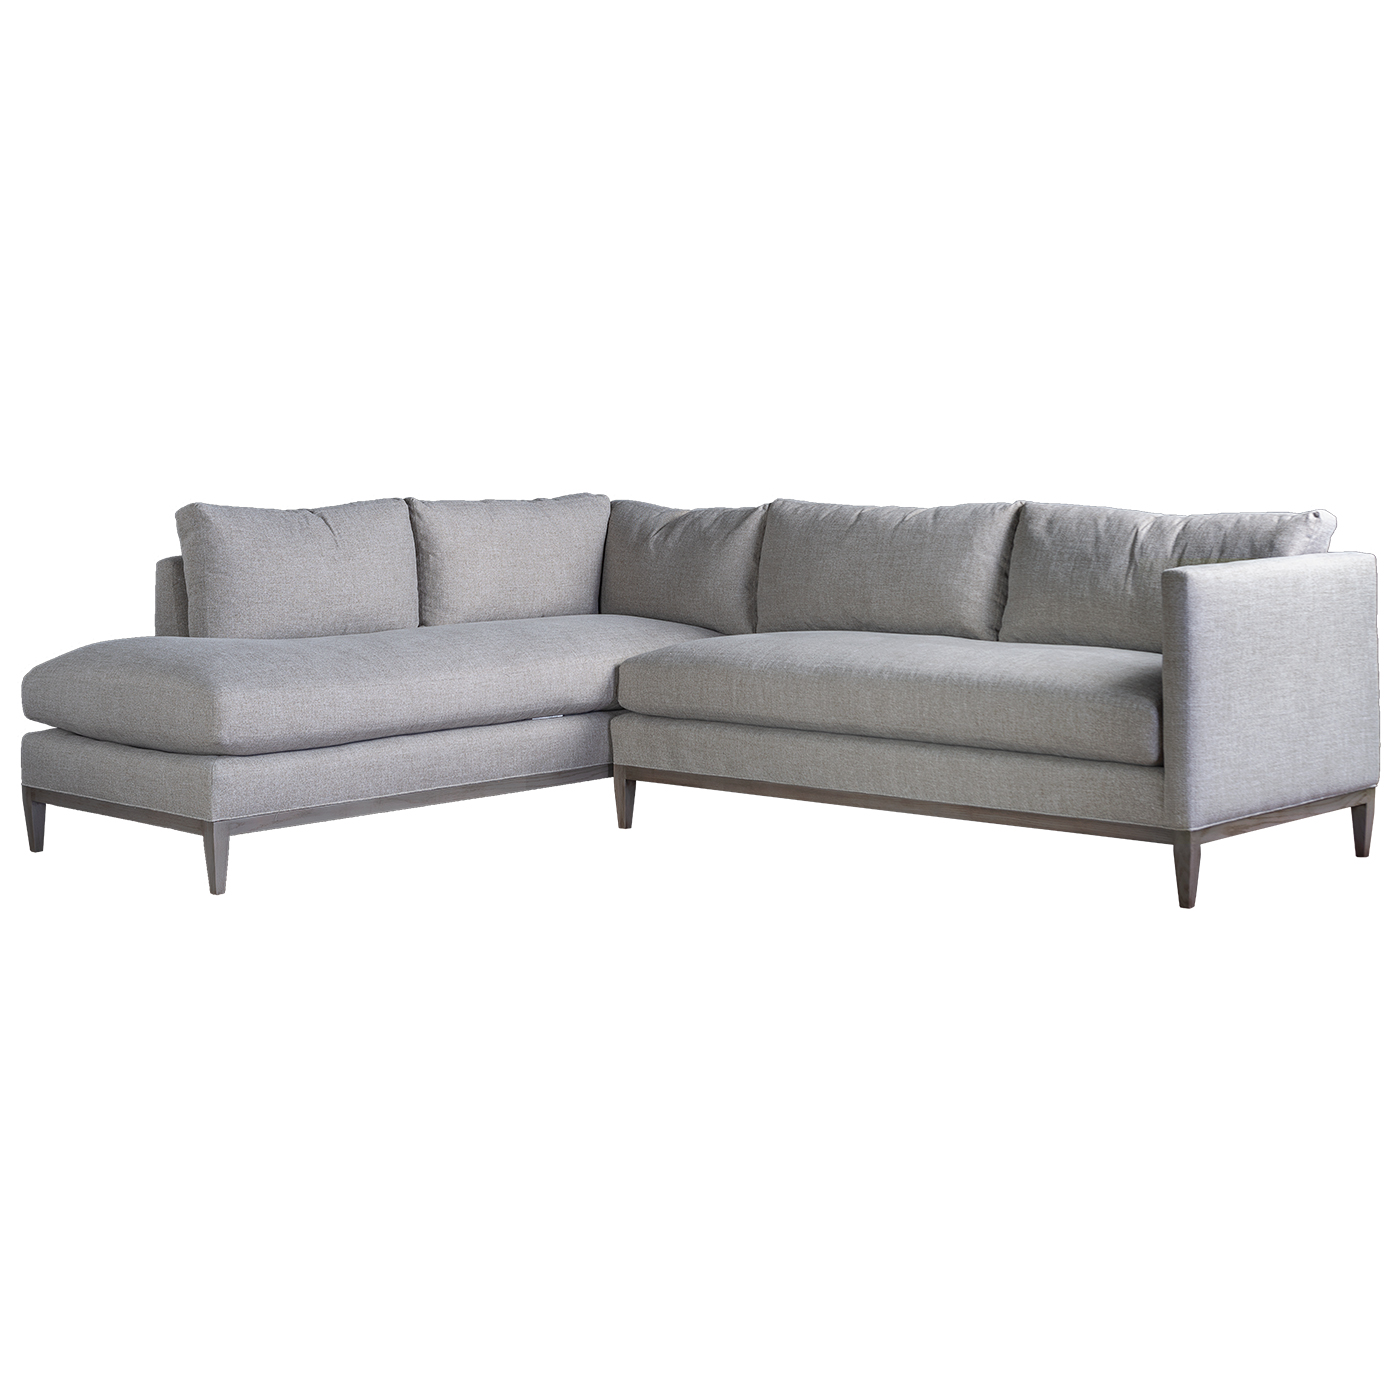 Strange Holloway Sectional Sofa In Crypton Slate Fabric Mecox Gardens Andrewgaddart Wooden Chair Designs For Living Room Andrewgaddartcom